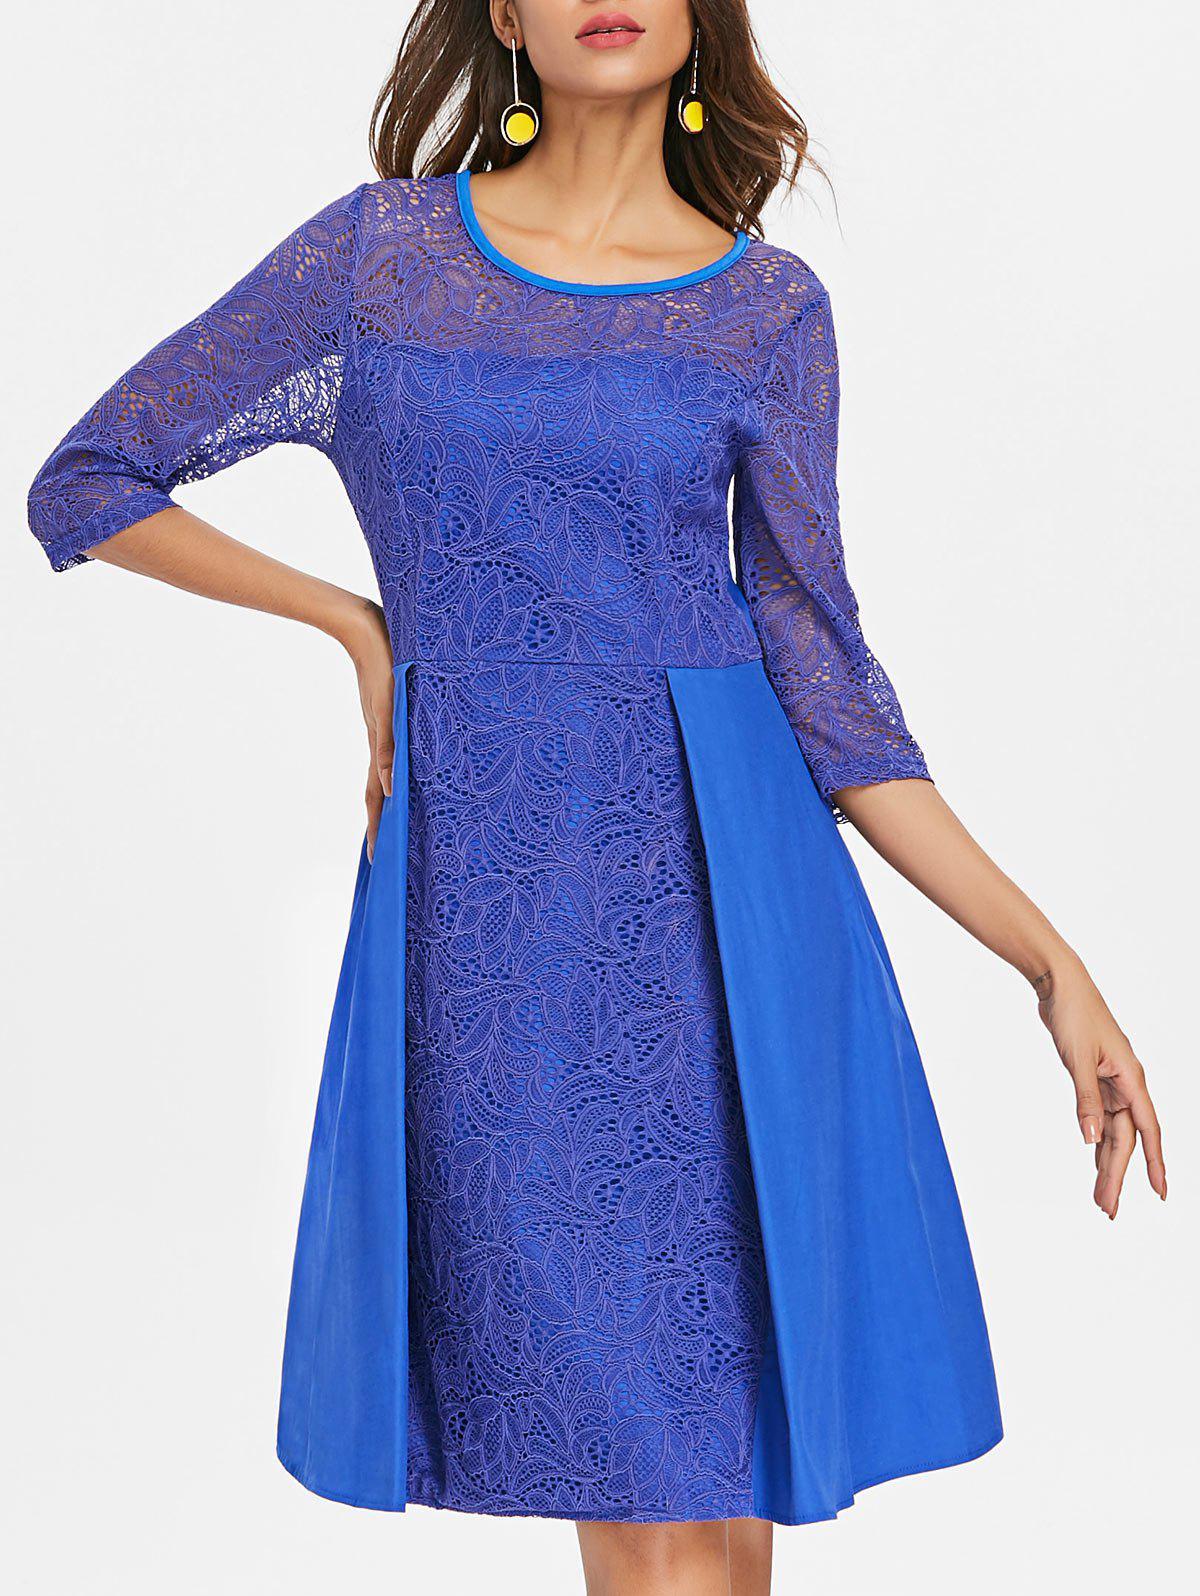 Floral Lace Fit and Flare Dress - BLUEBERRY BLUE XL